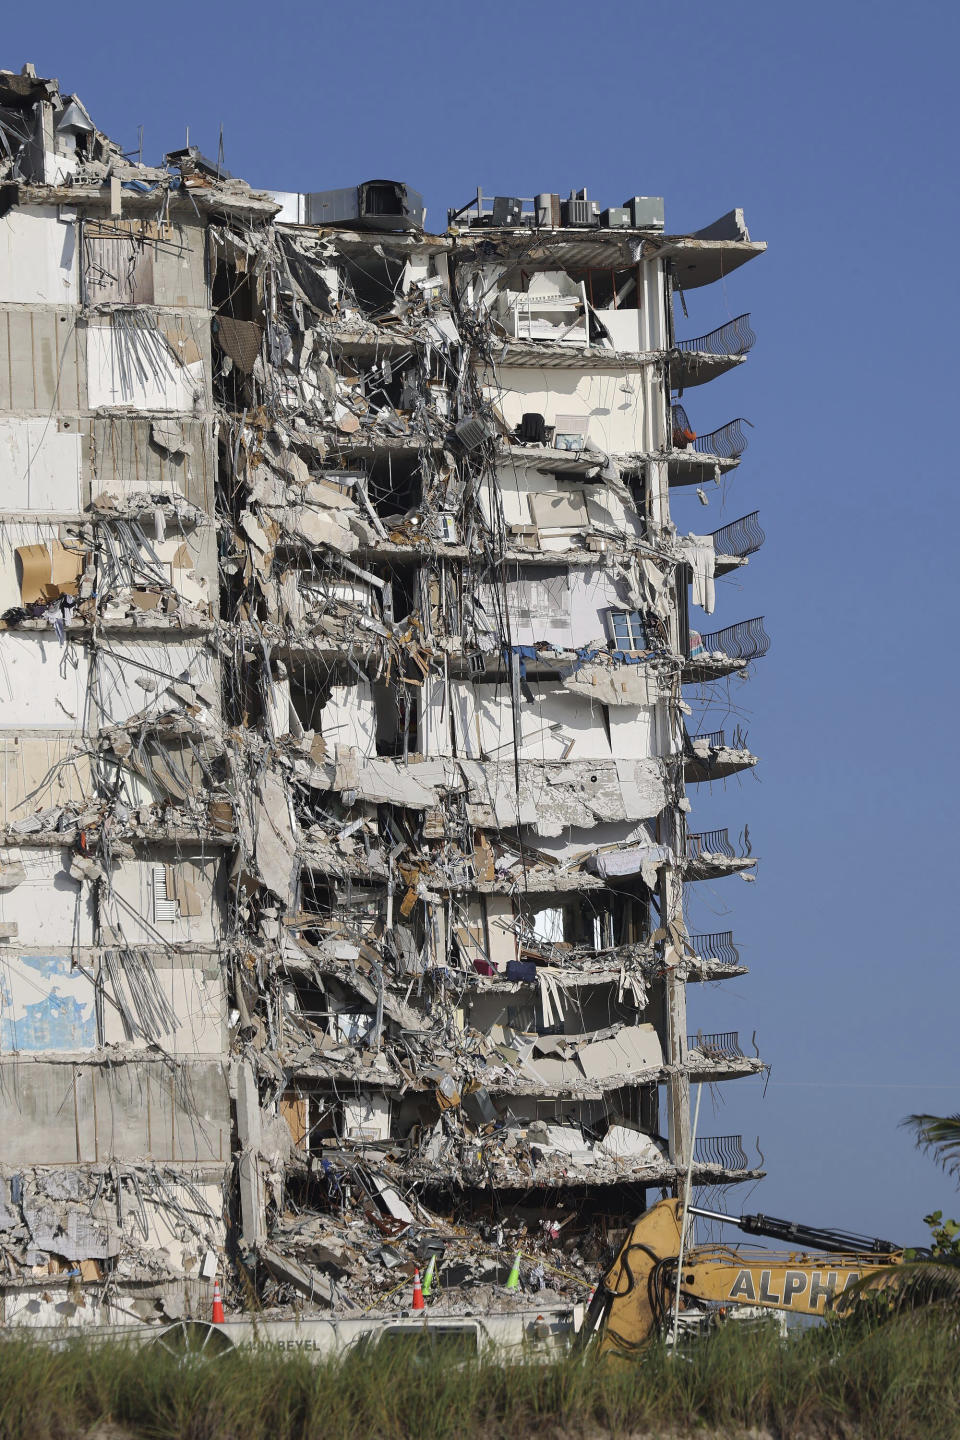 The remaining debris of the collapsed Champlain Towers South during recovery is seen as the operation has slowed down as Miami-Dade Police placed a perimeter about a block south and two blocks north restricting any foot traffic near the site on Sunday, July 4, 2021, in Surfside, Fla. Demolition specialists carefully bored holes to insert explosive charges into the precarious, still-standing portion of a collapsed South Florida condo building that will come down to open up new areas for rescue teams to search. A top Miami-Dade fire official said 80% of the drilling work was complete and the remaining structure could come down as soon as Sunday night. (Carl Juste/Miami Herald via AP)